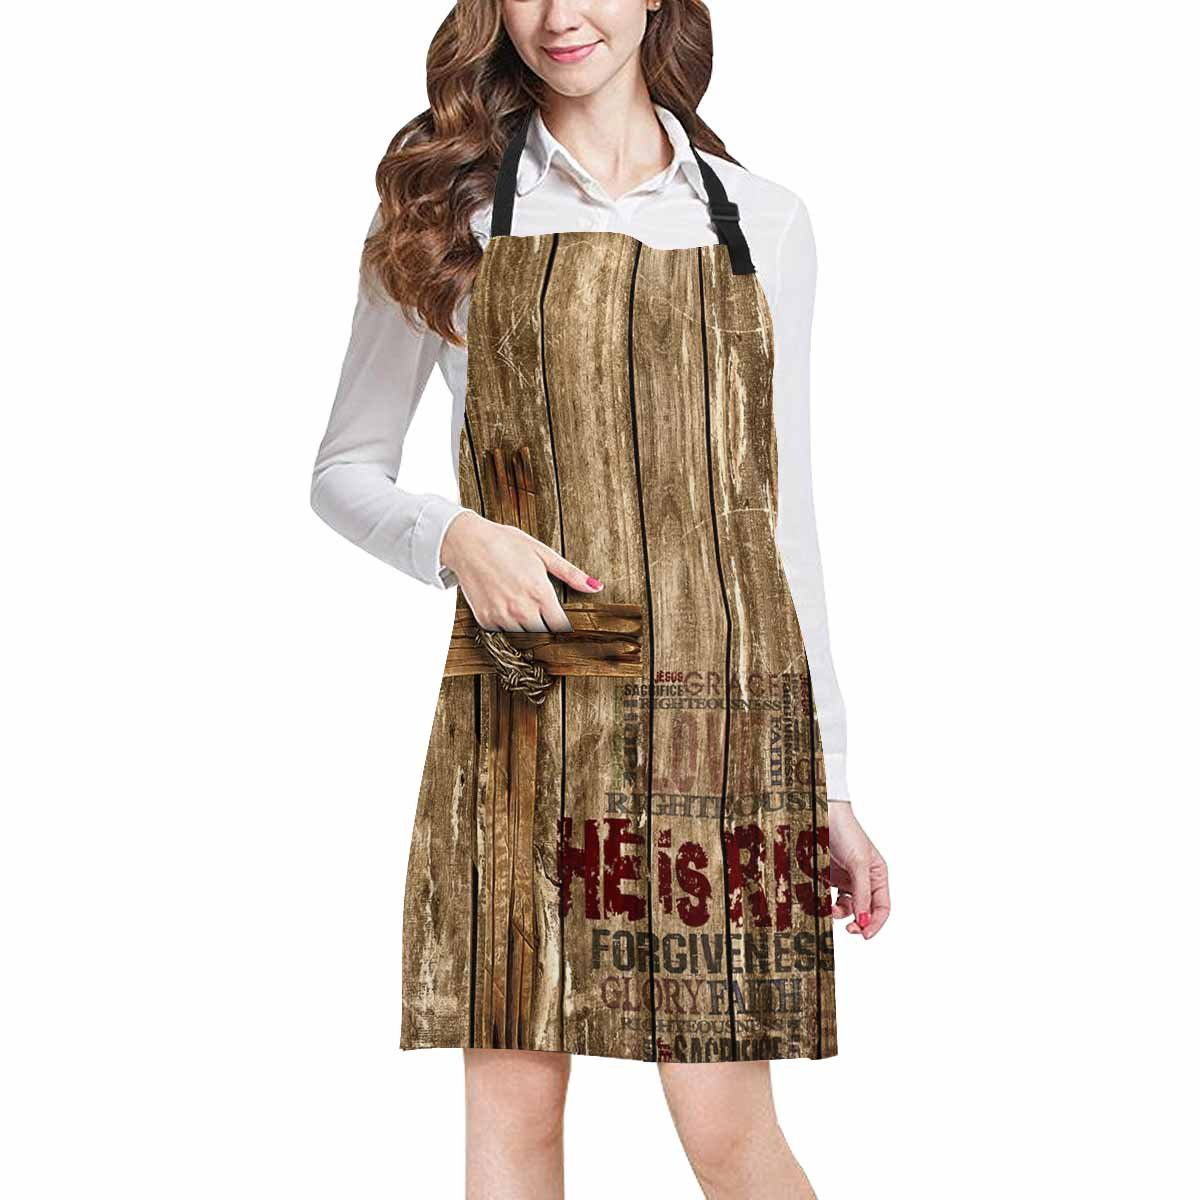 InterestPrint He Is Risen Easter with Christian Cross on Wood Design Adjustable Bib Apron with Pockets - Commercial Restaurant and Home Kitchen Adjustable Apron, Plus Size